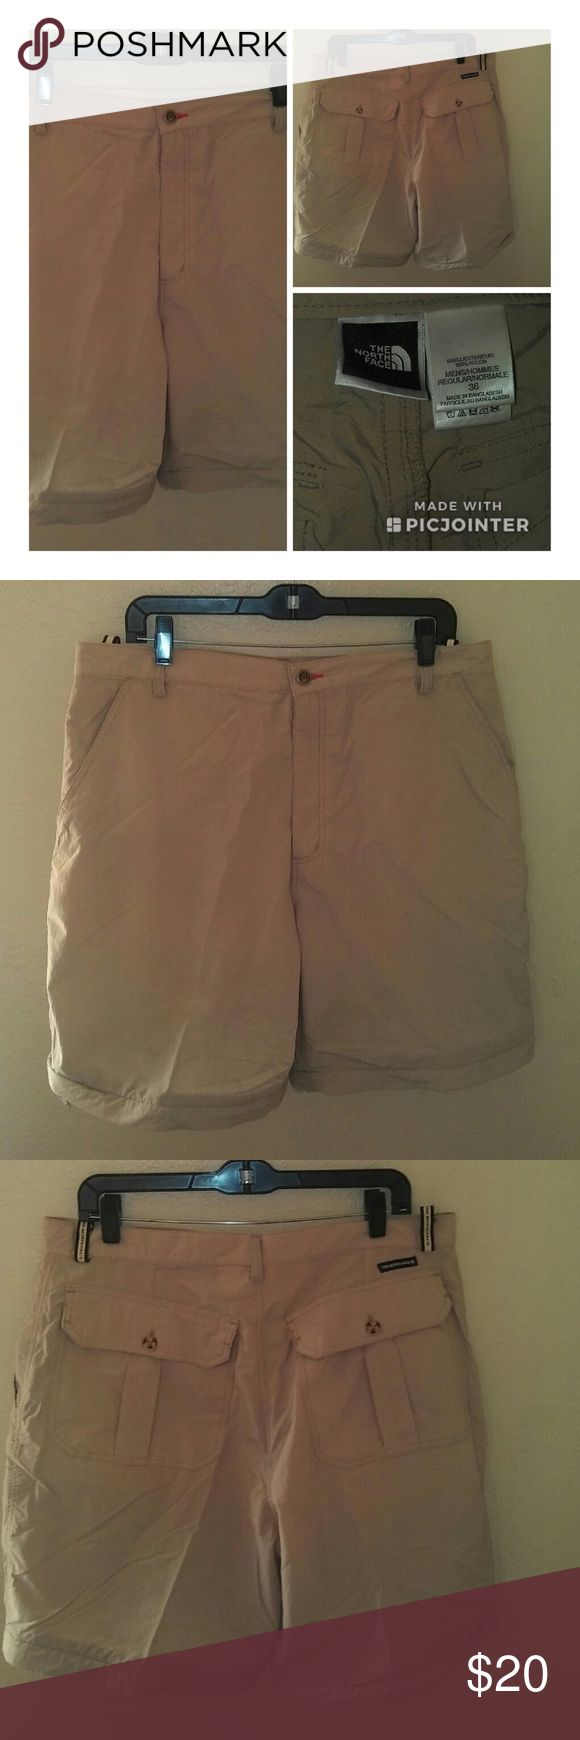 North Face Men's Shorts - size 36 For sale is a lightly used pair of North Face Men's Shorts. Size is 36. Great nylon construction, durable. Button pockets in back. See pictures for details. North Face Shorts Hybrids